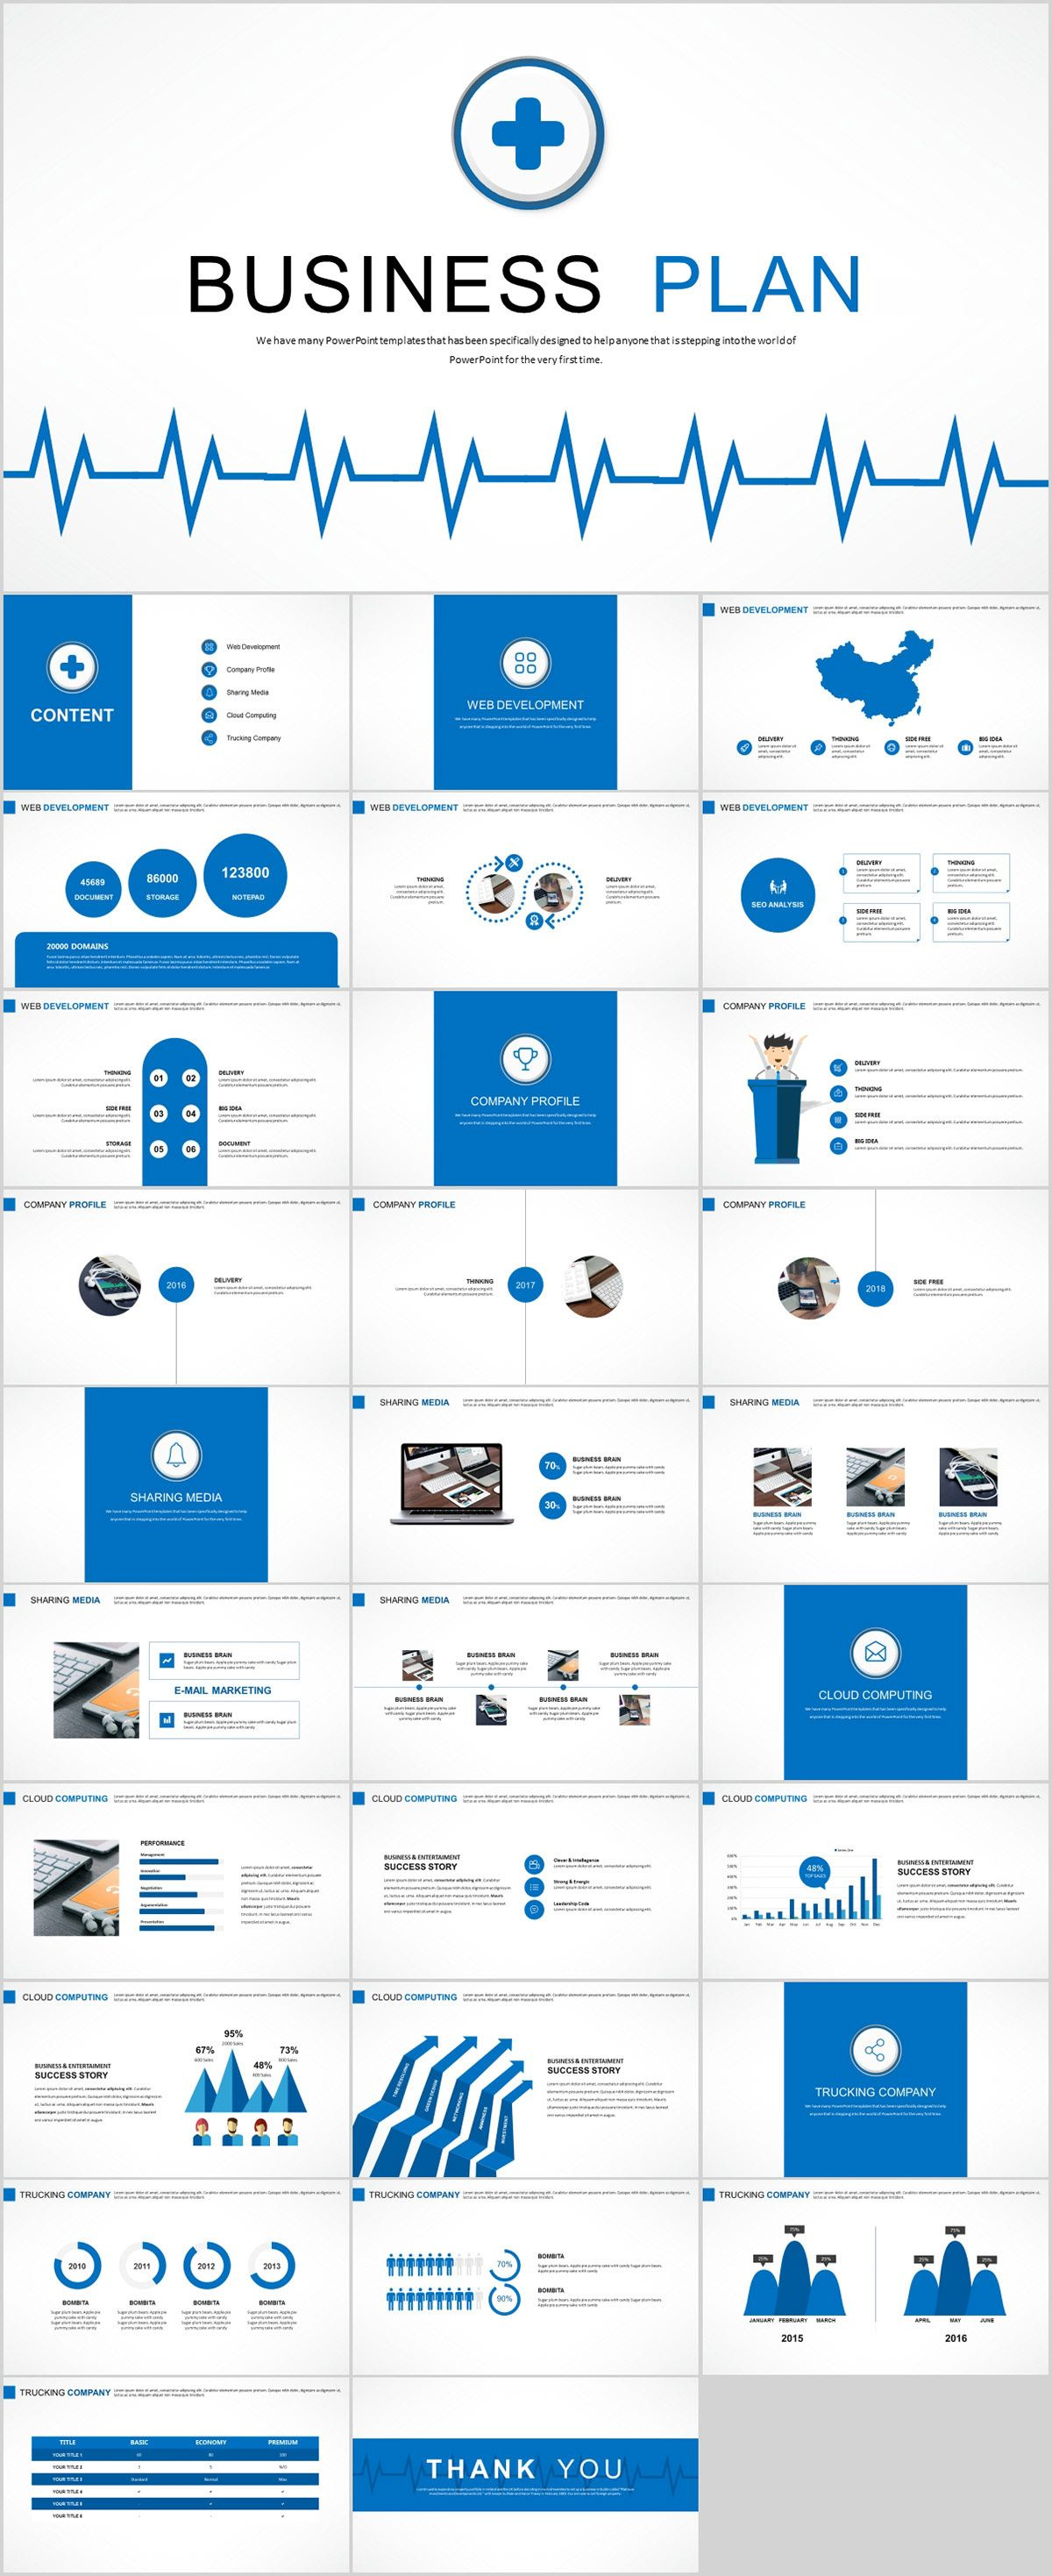 Pin by powerpoint templates on medical templates pinterest power pin by powerpoint templates on medical templates pinterest power point templates medical and template toneelgroepblik Images